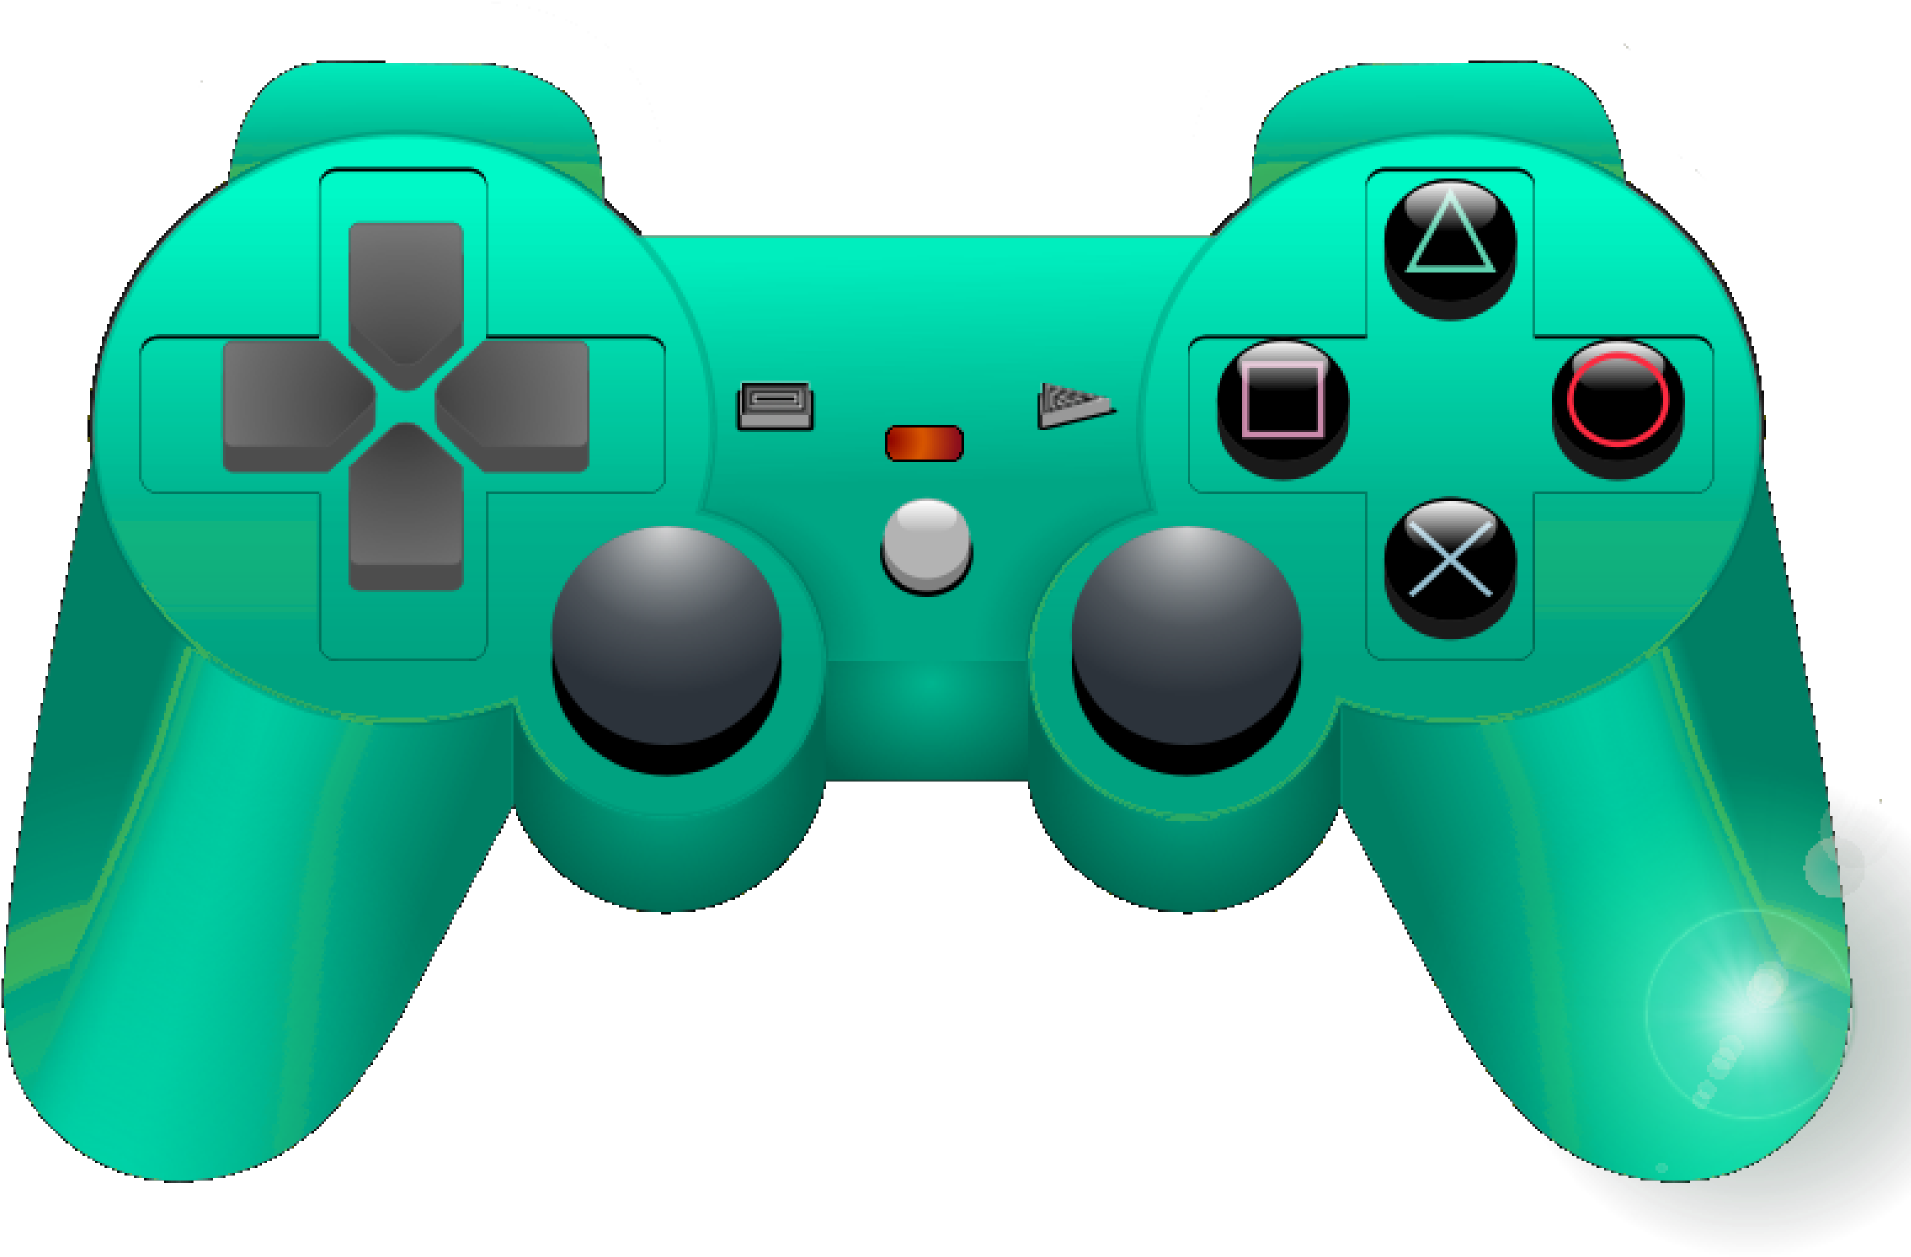 Clipart online games picture library stock Game Controller Clip Art At Clkercom Vector Online - Video Game ... picture library stock